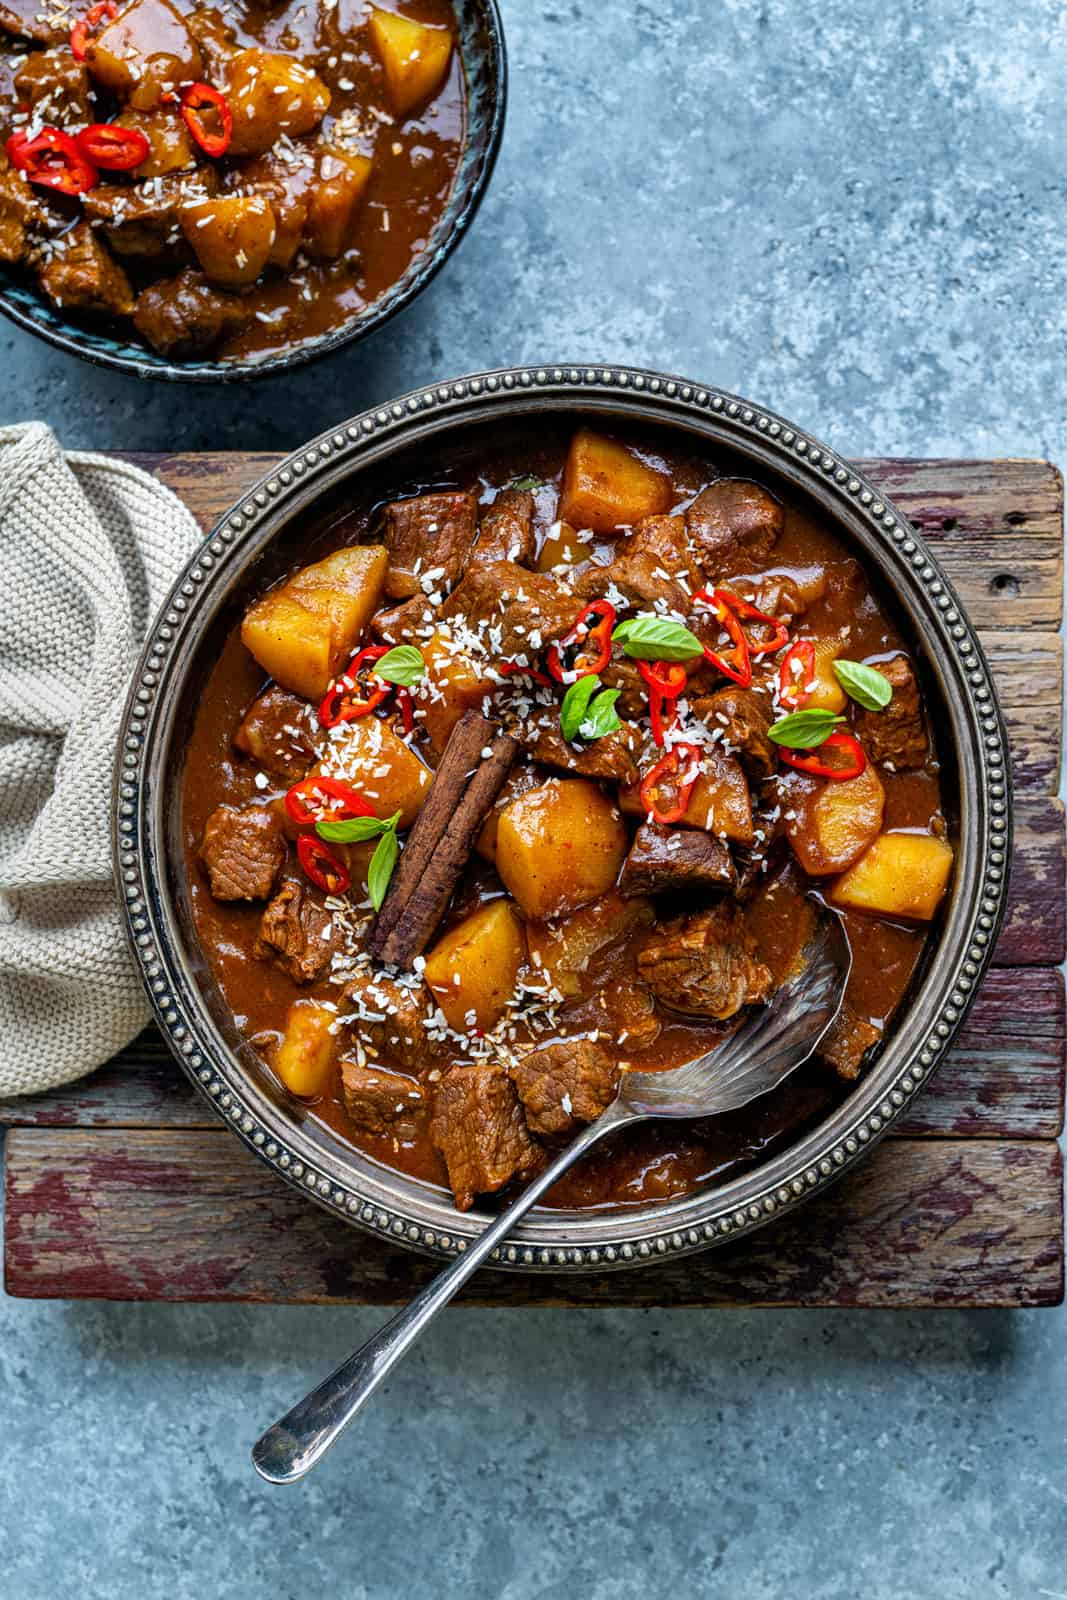 Coconut Beef Curry with potatoes served in a bowl garnished with basil and chopped chillies